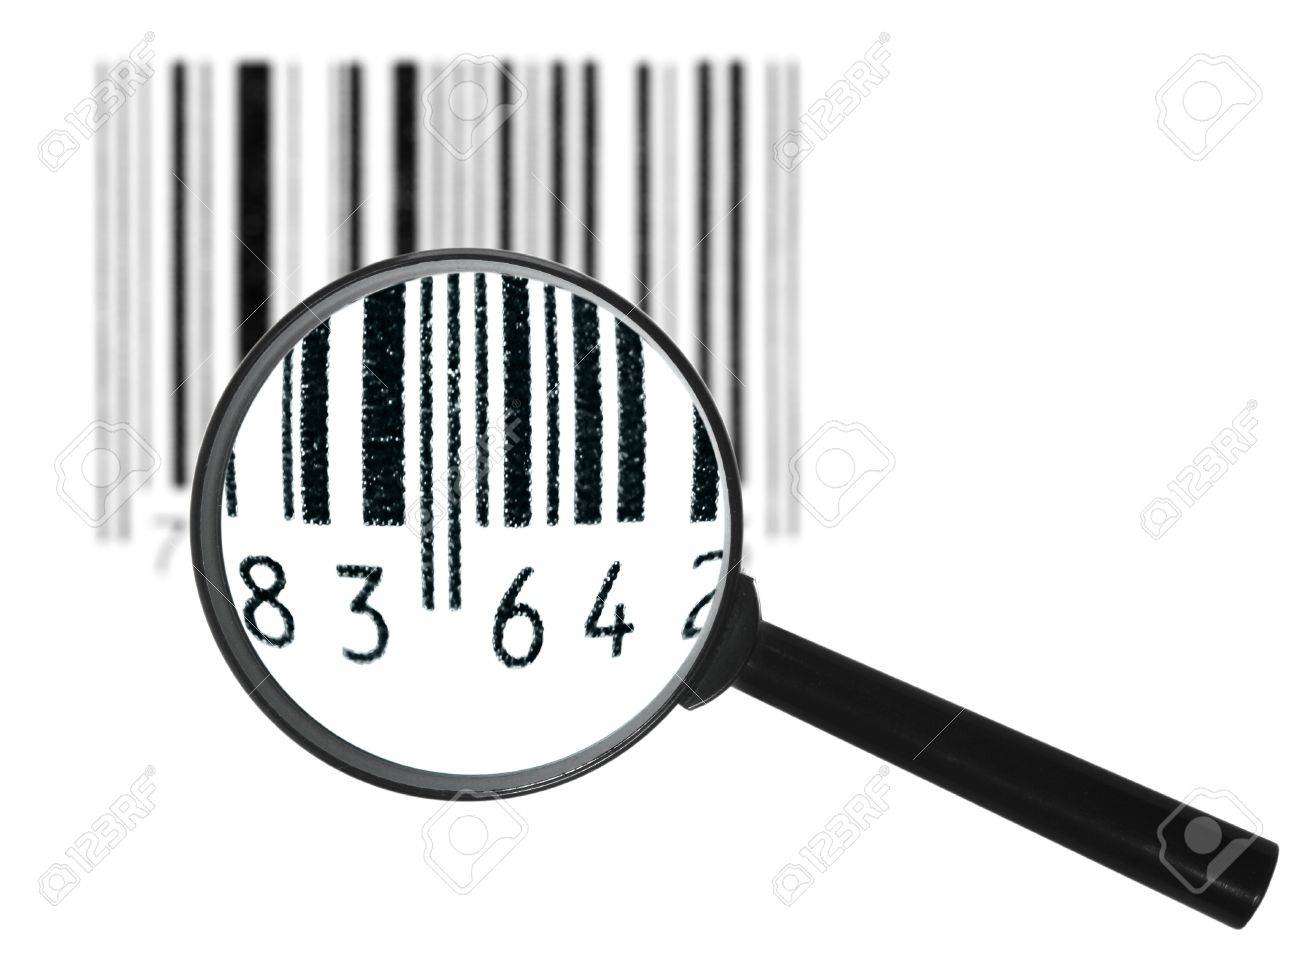 Preview of-focus black grunge bar-code symbol through magnifier lens. Art design. Isolated on white background. Stock Photo - 18754301